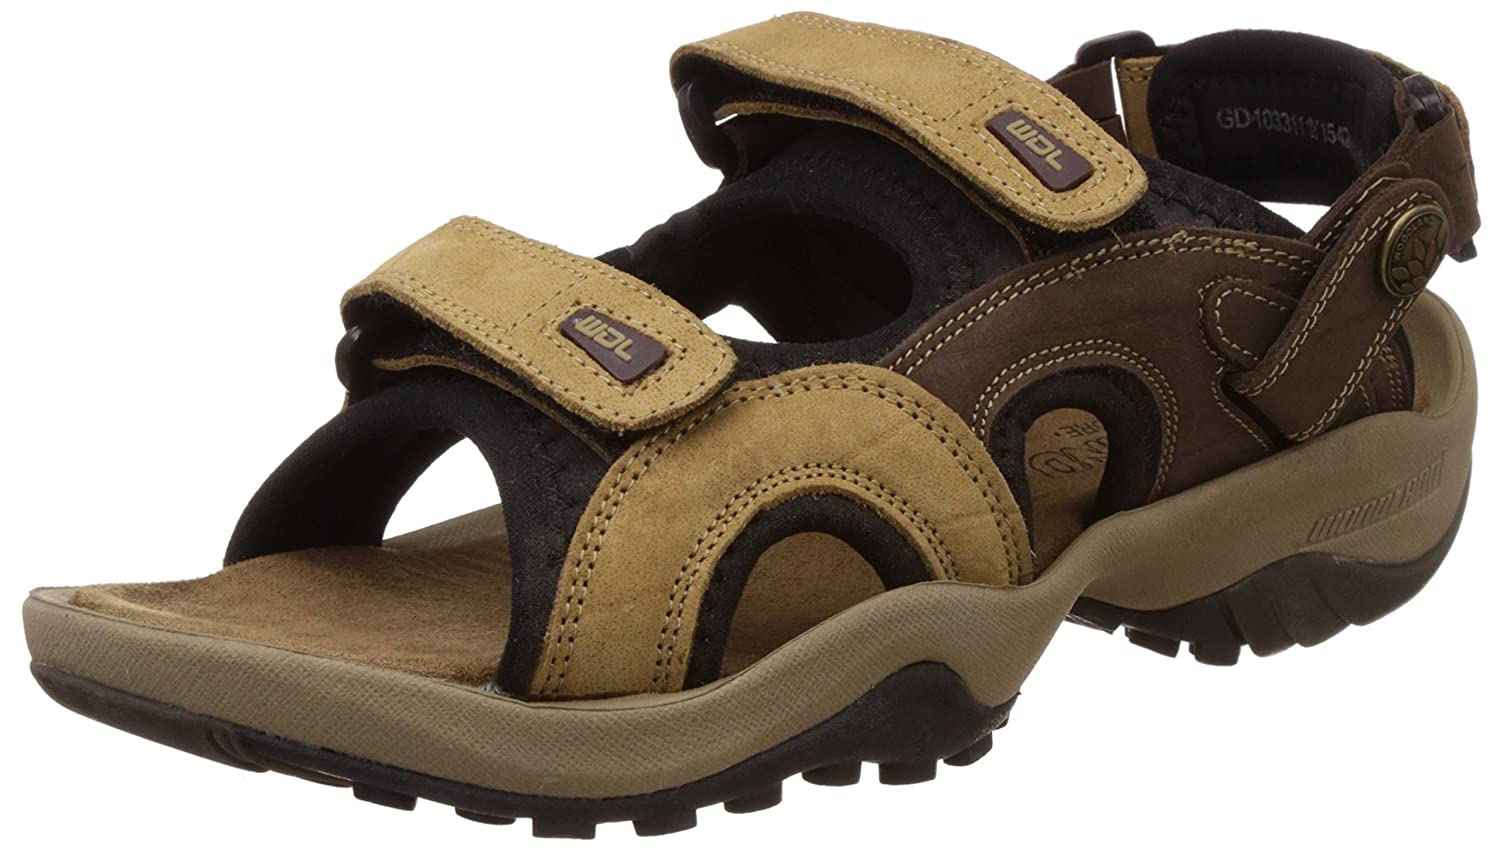 And Floatersbuy Woodland Sandals Low Leather Online Tqschrd At Men's CrBWdxoe